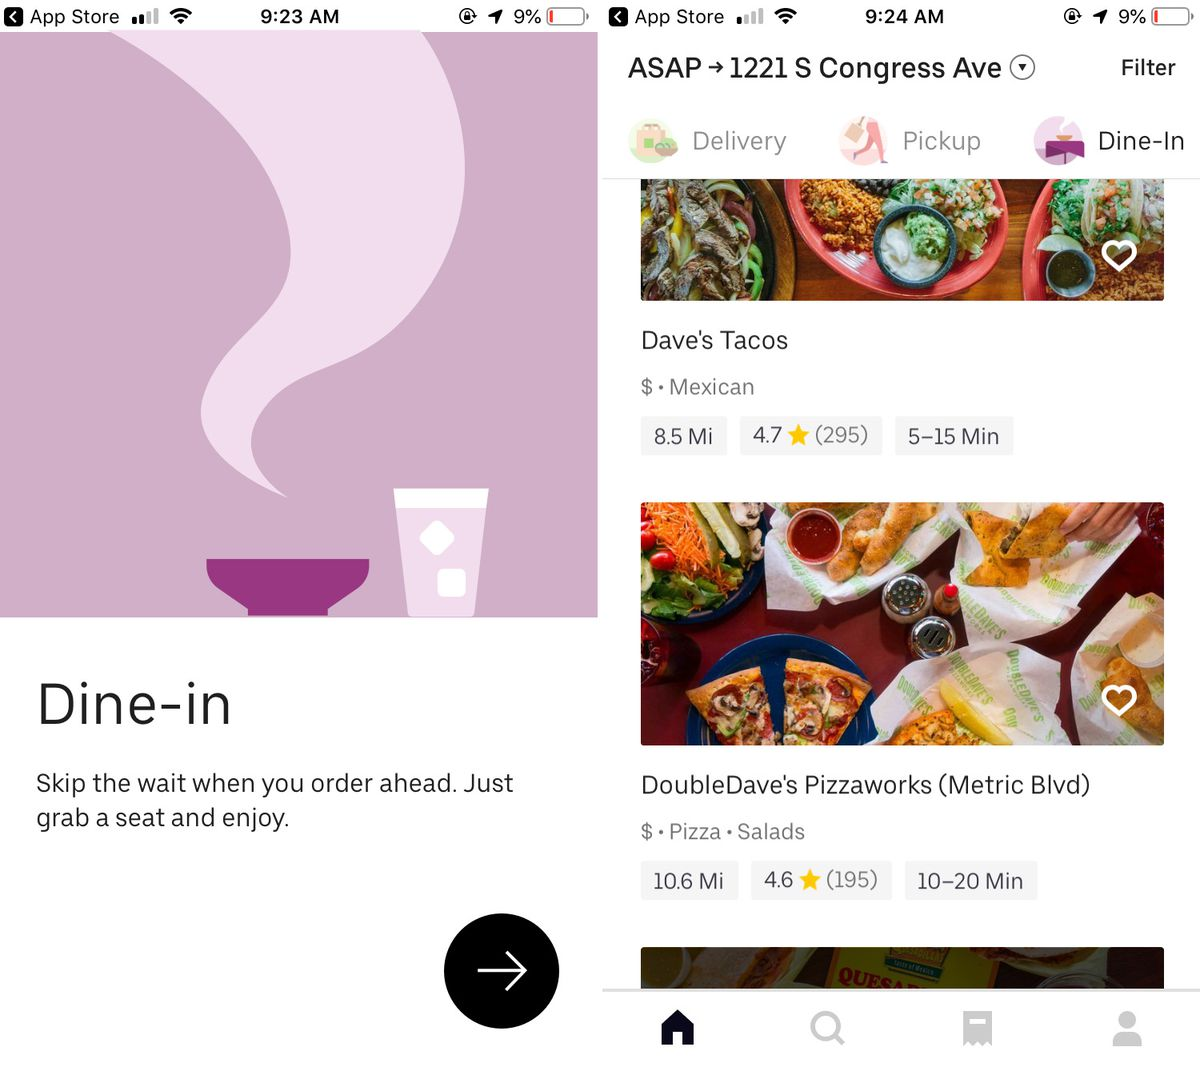 Uber Eats Tests New Dine-In Option Allowing Customers to Pre-Order